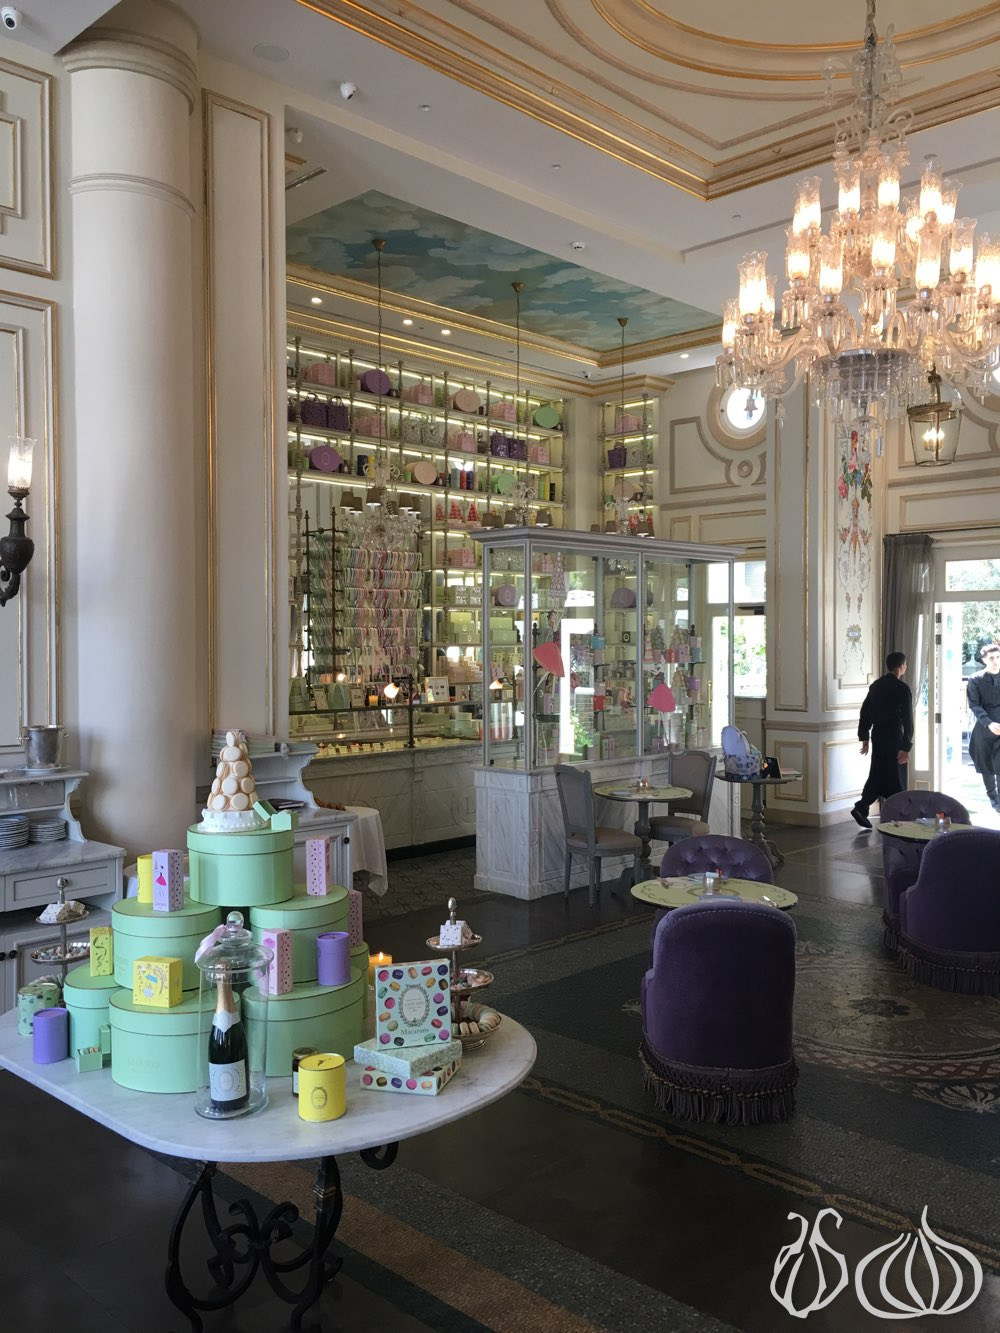 laduree-beirut-breakfast562016-09-29-10-32-53